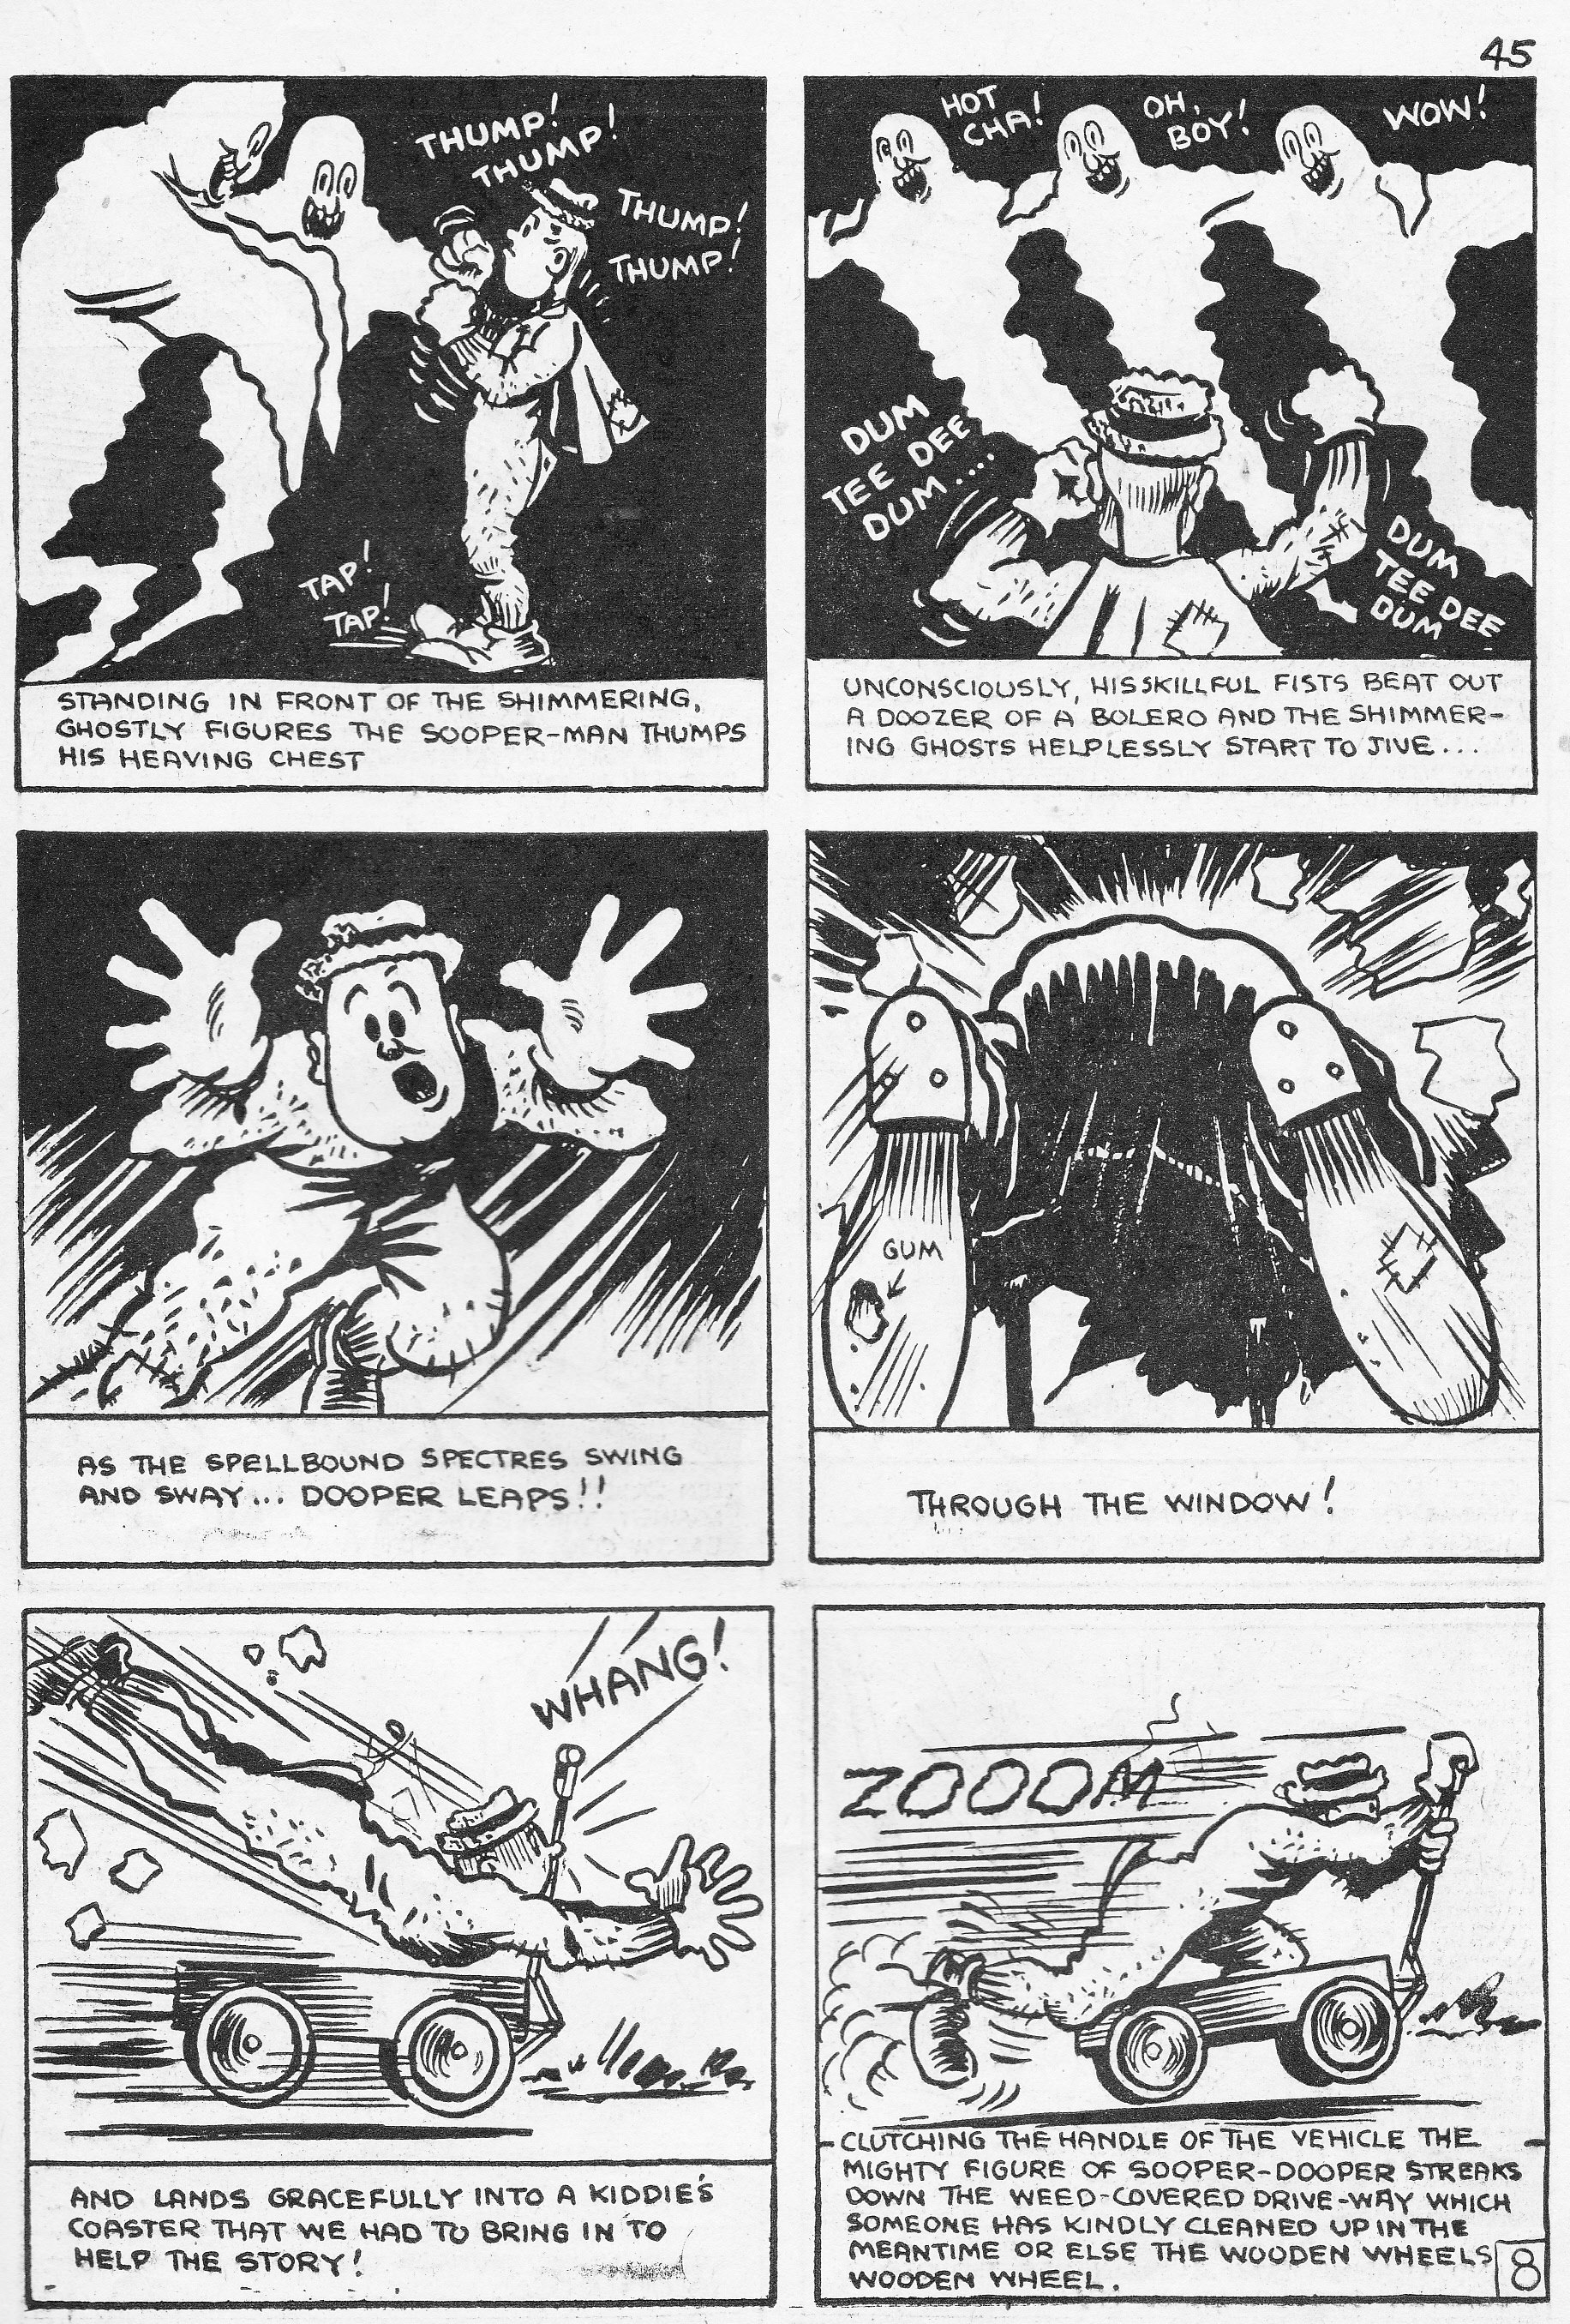 C:\Users\Robert\Documents\CARTOONING ILLUSTRATION ANIMATION\IMAGE CARTOON\IMAGE CARTOON S\SOOPER DOOPER, 3 Aces, 1-6, June 1942, 45.jpg